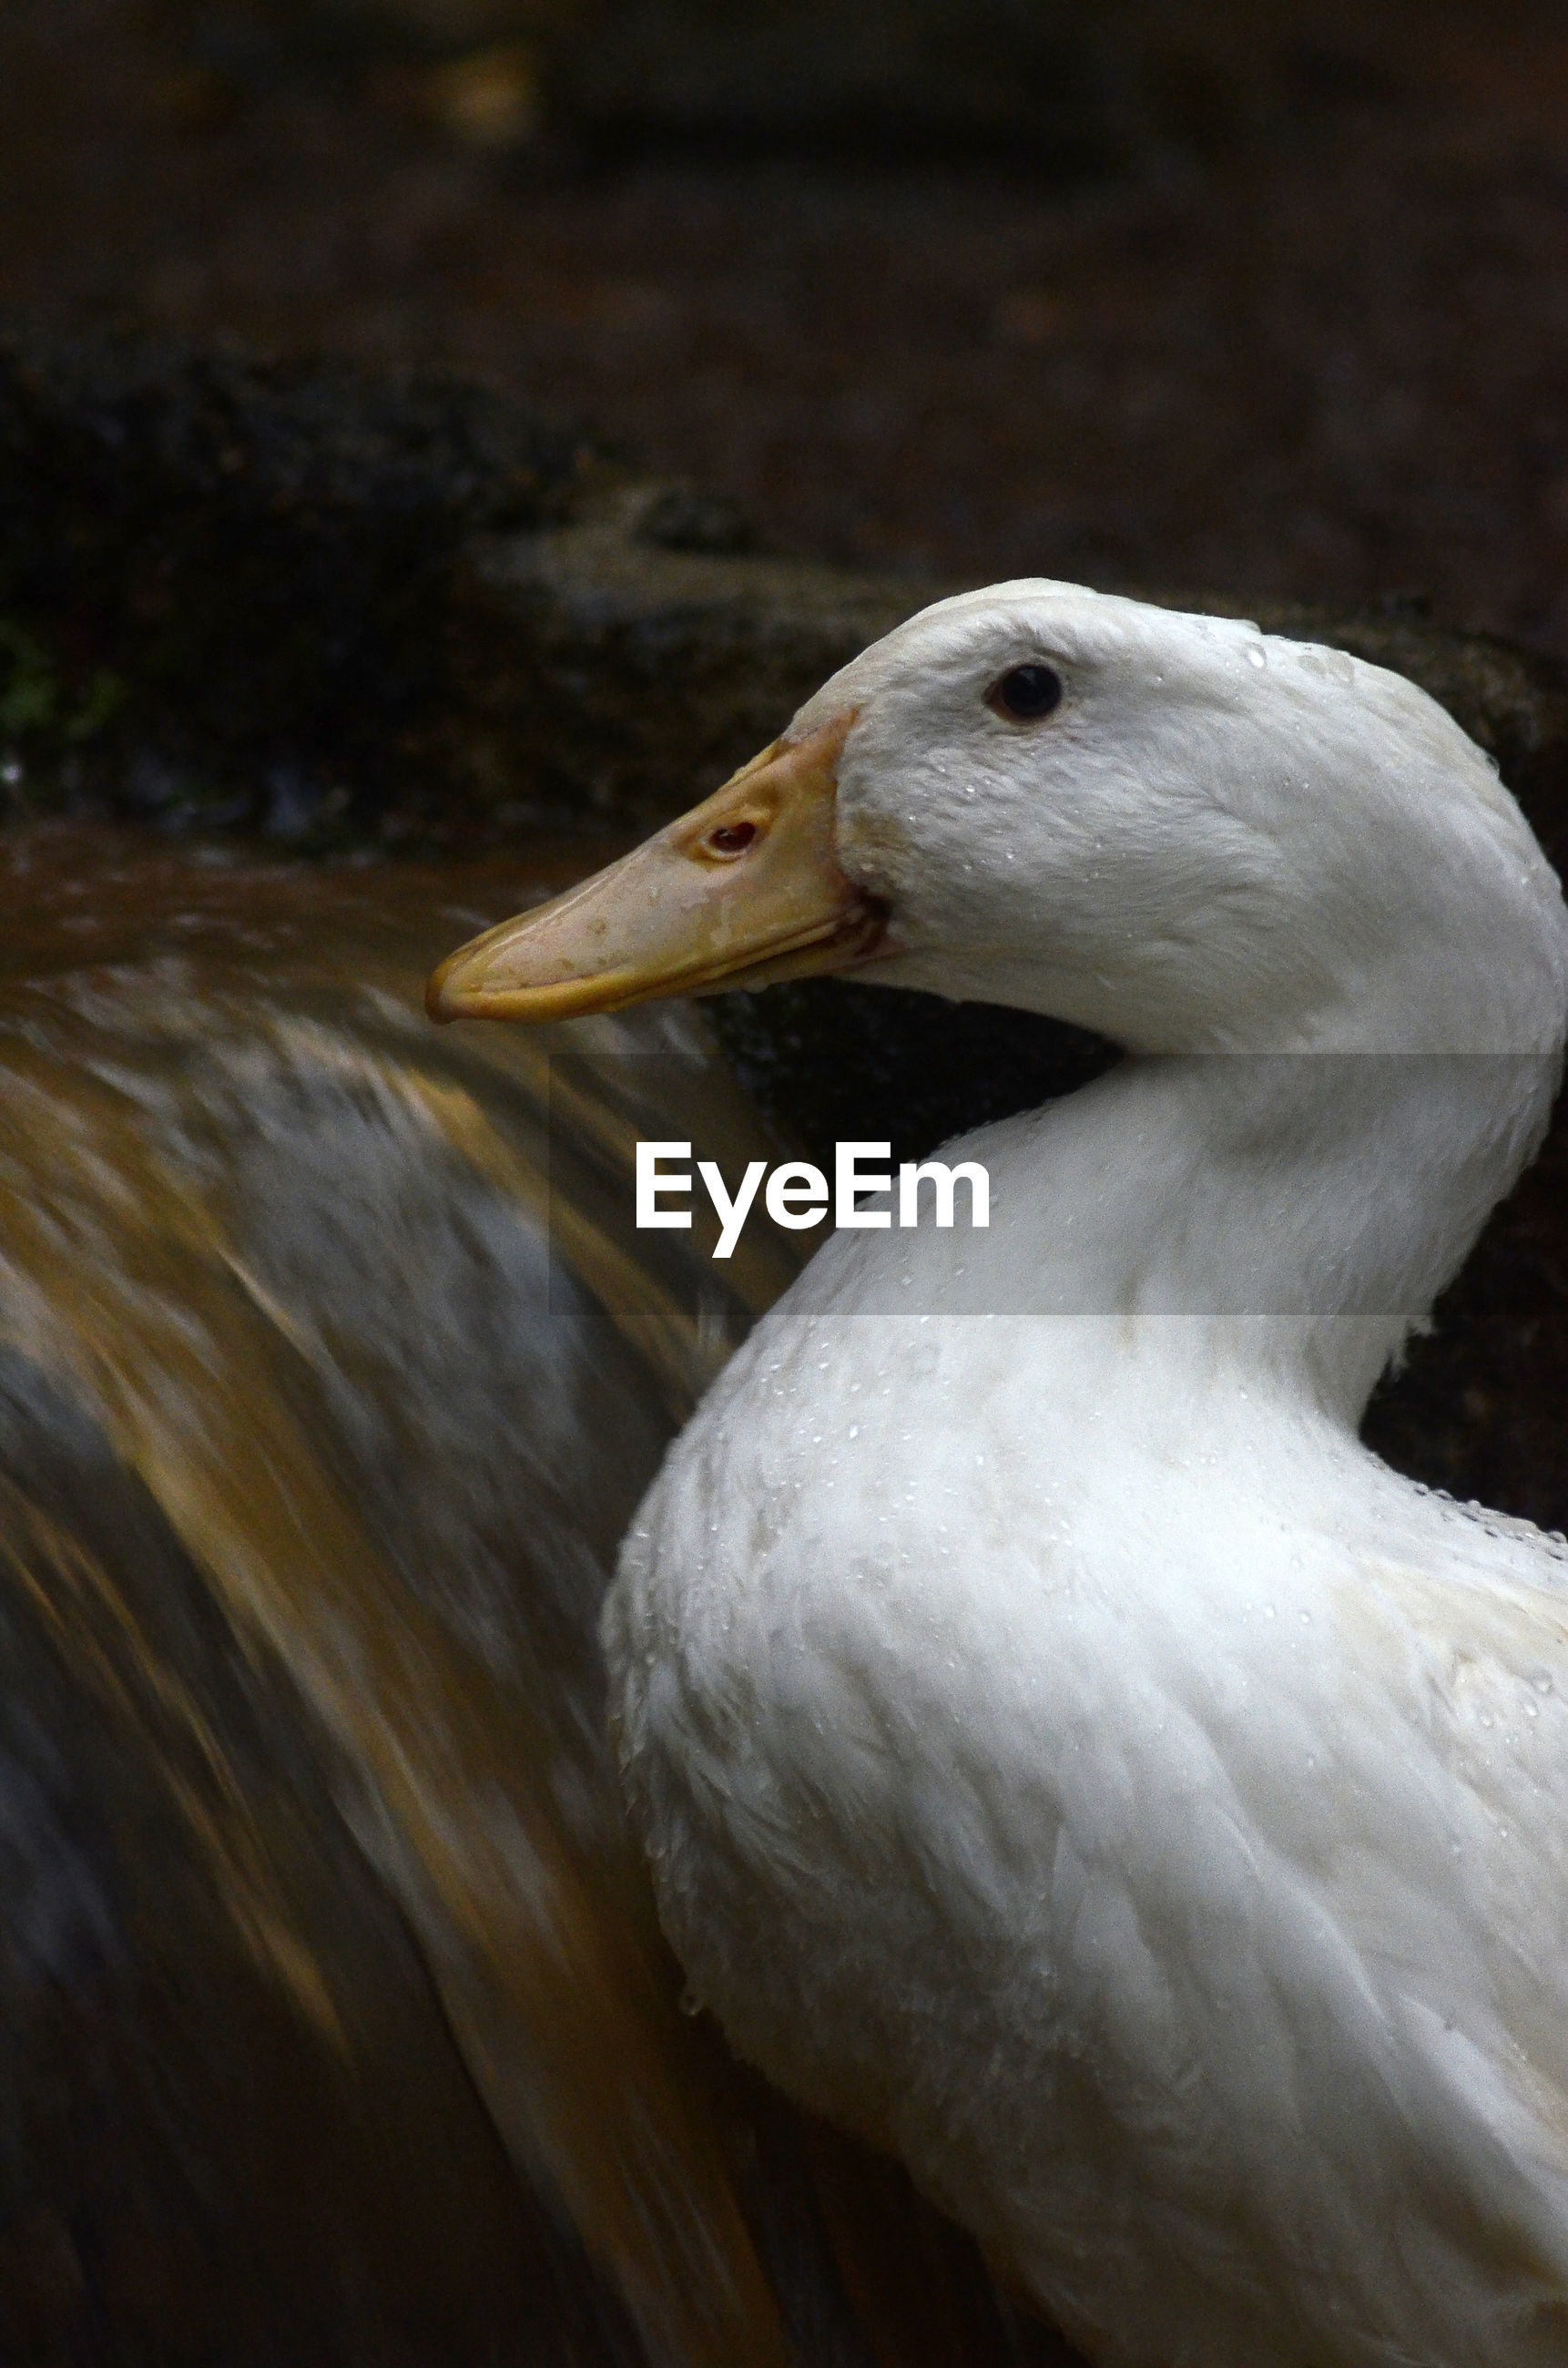 Close up white duck